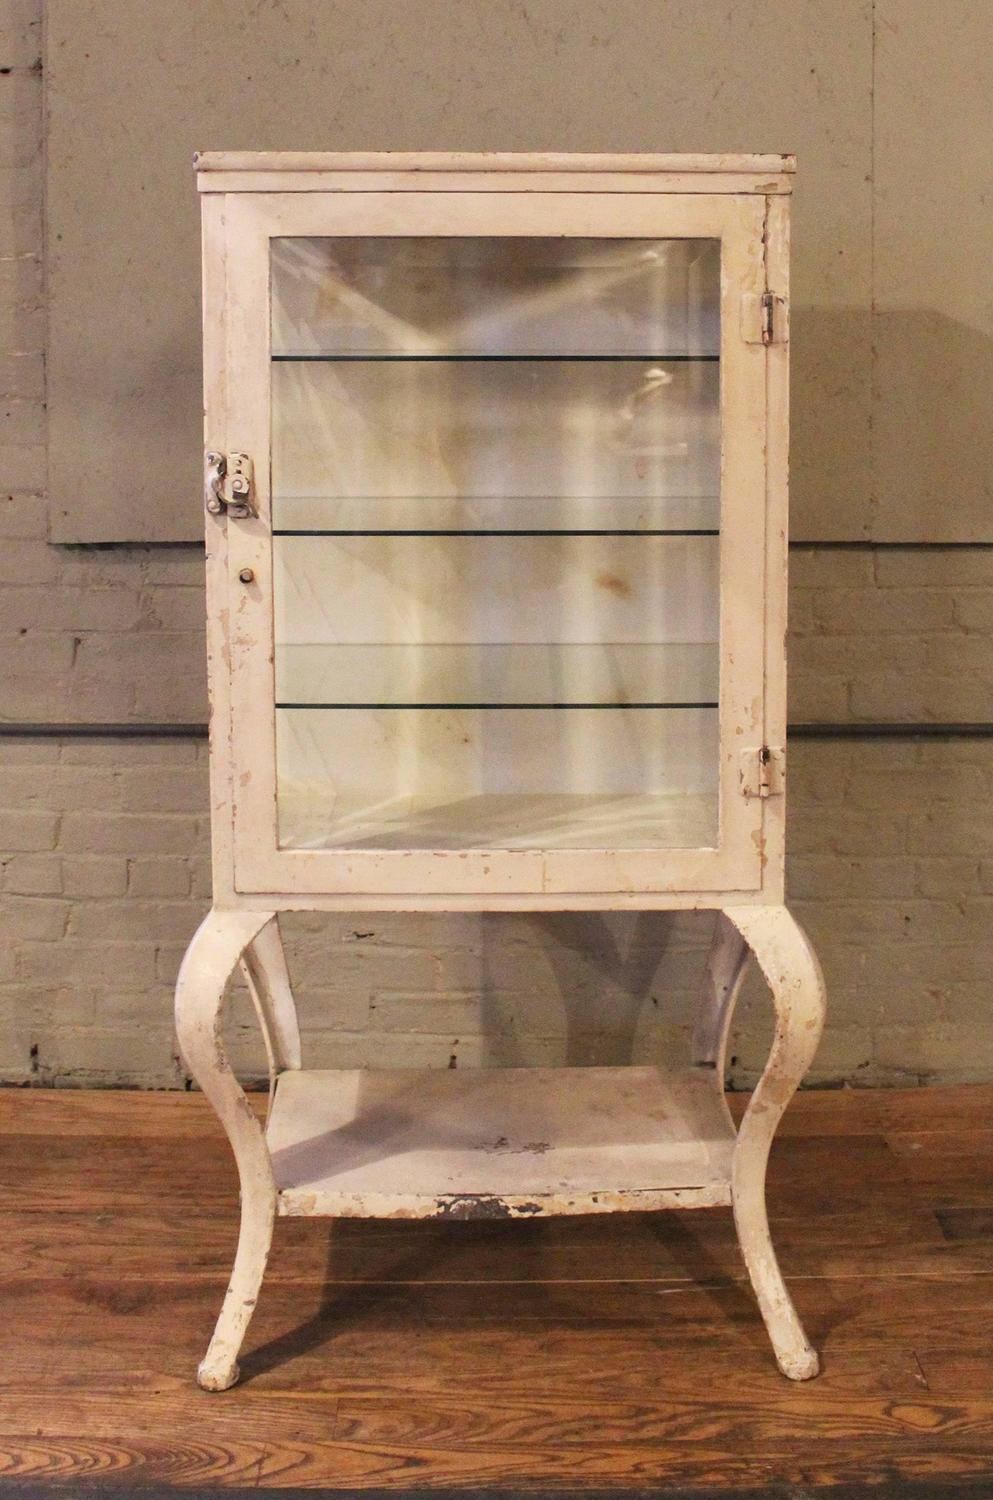 Antique Metal and Glass Apothecary Medical Storage